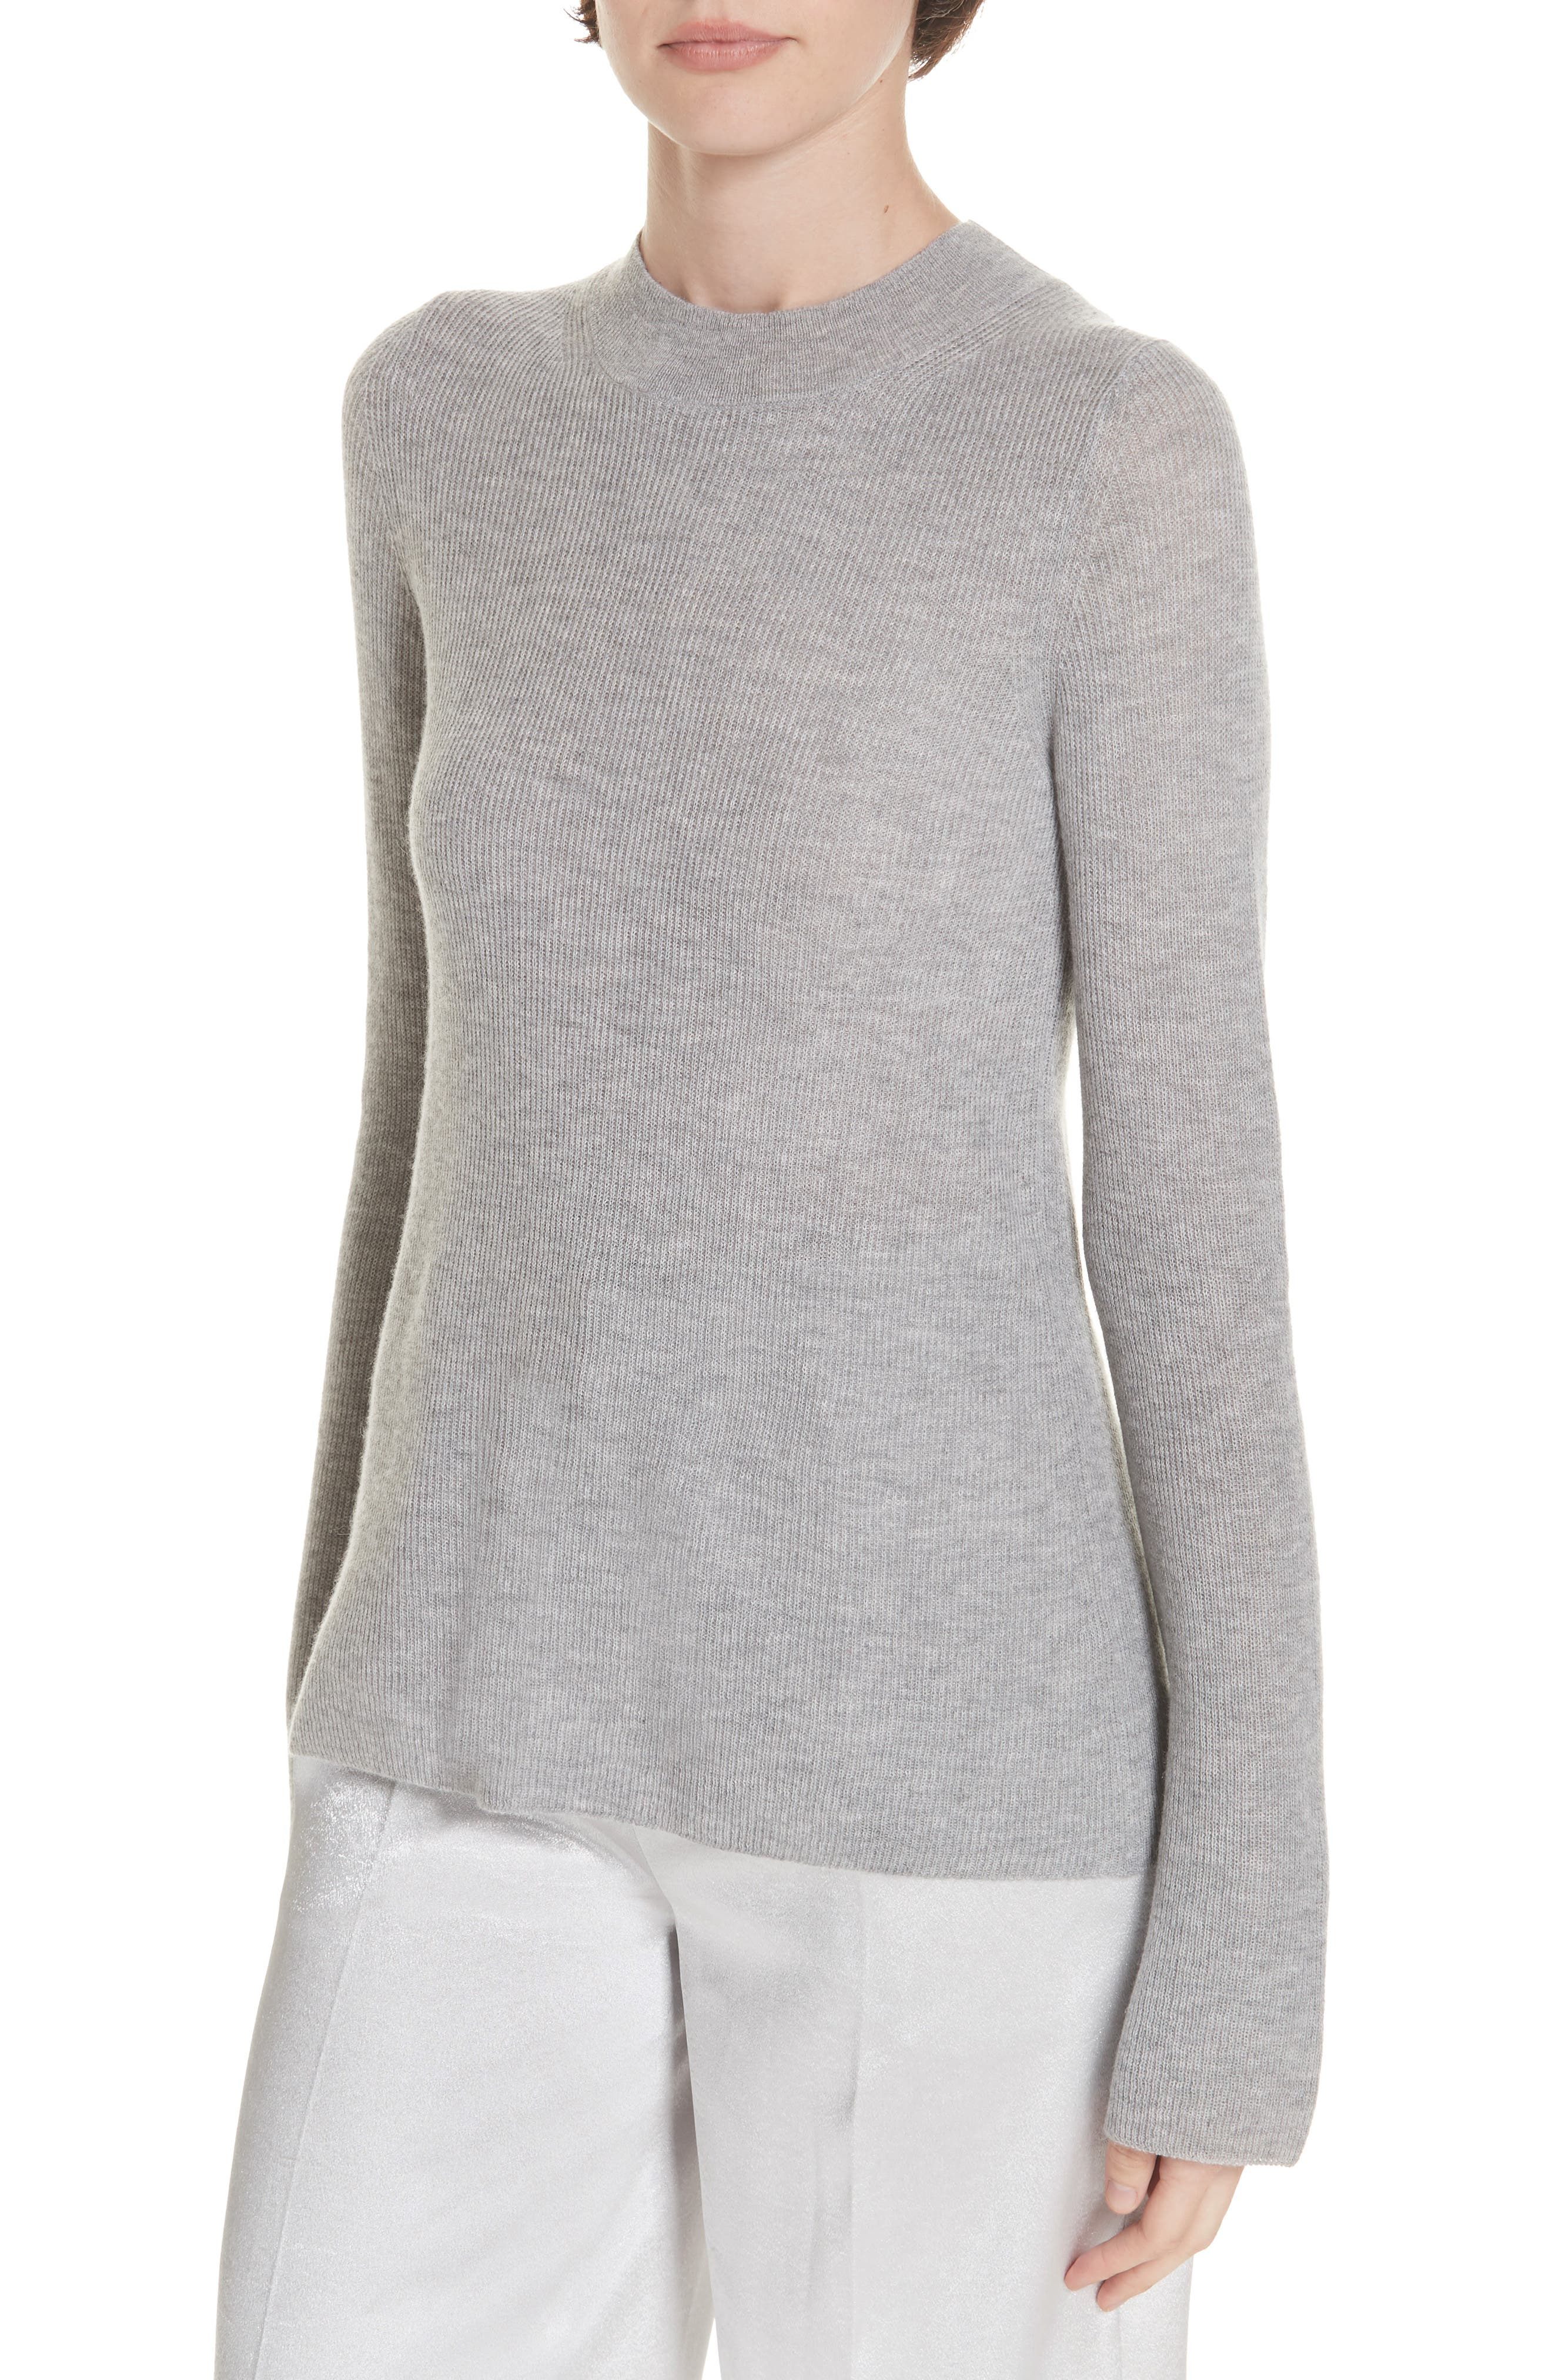 Ribbed Cashmere Sweater,                         Main,                         color, 060